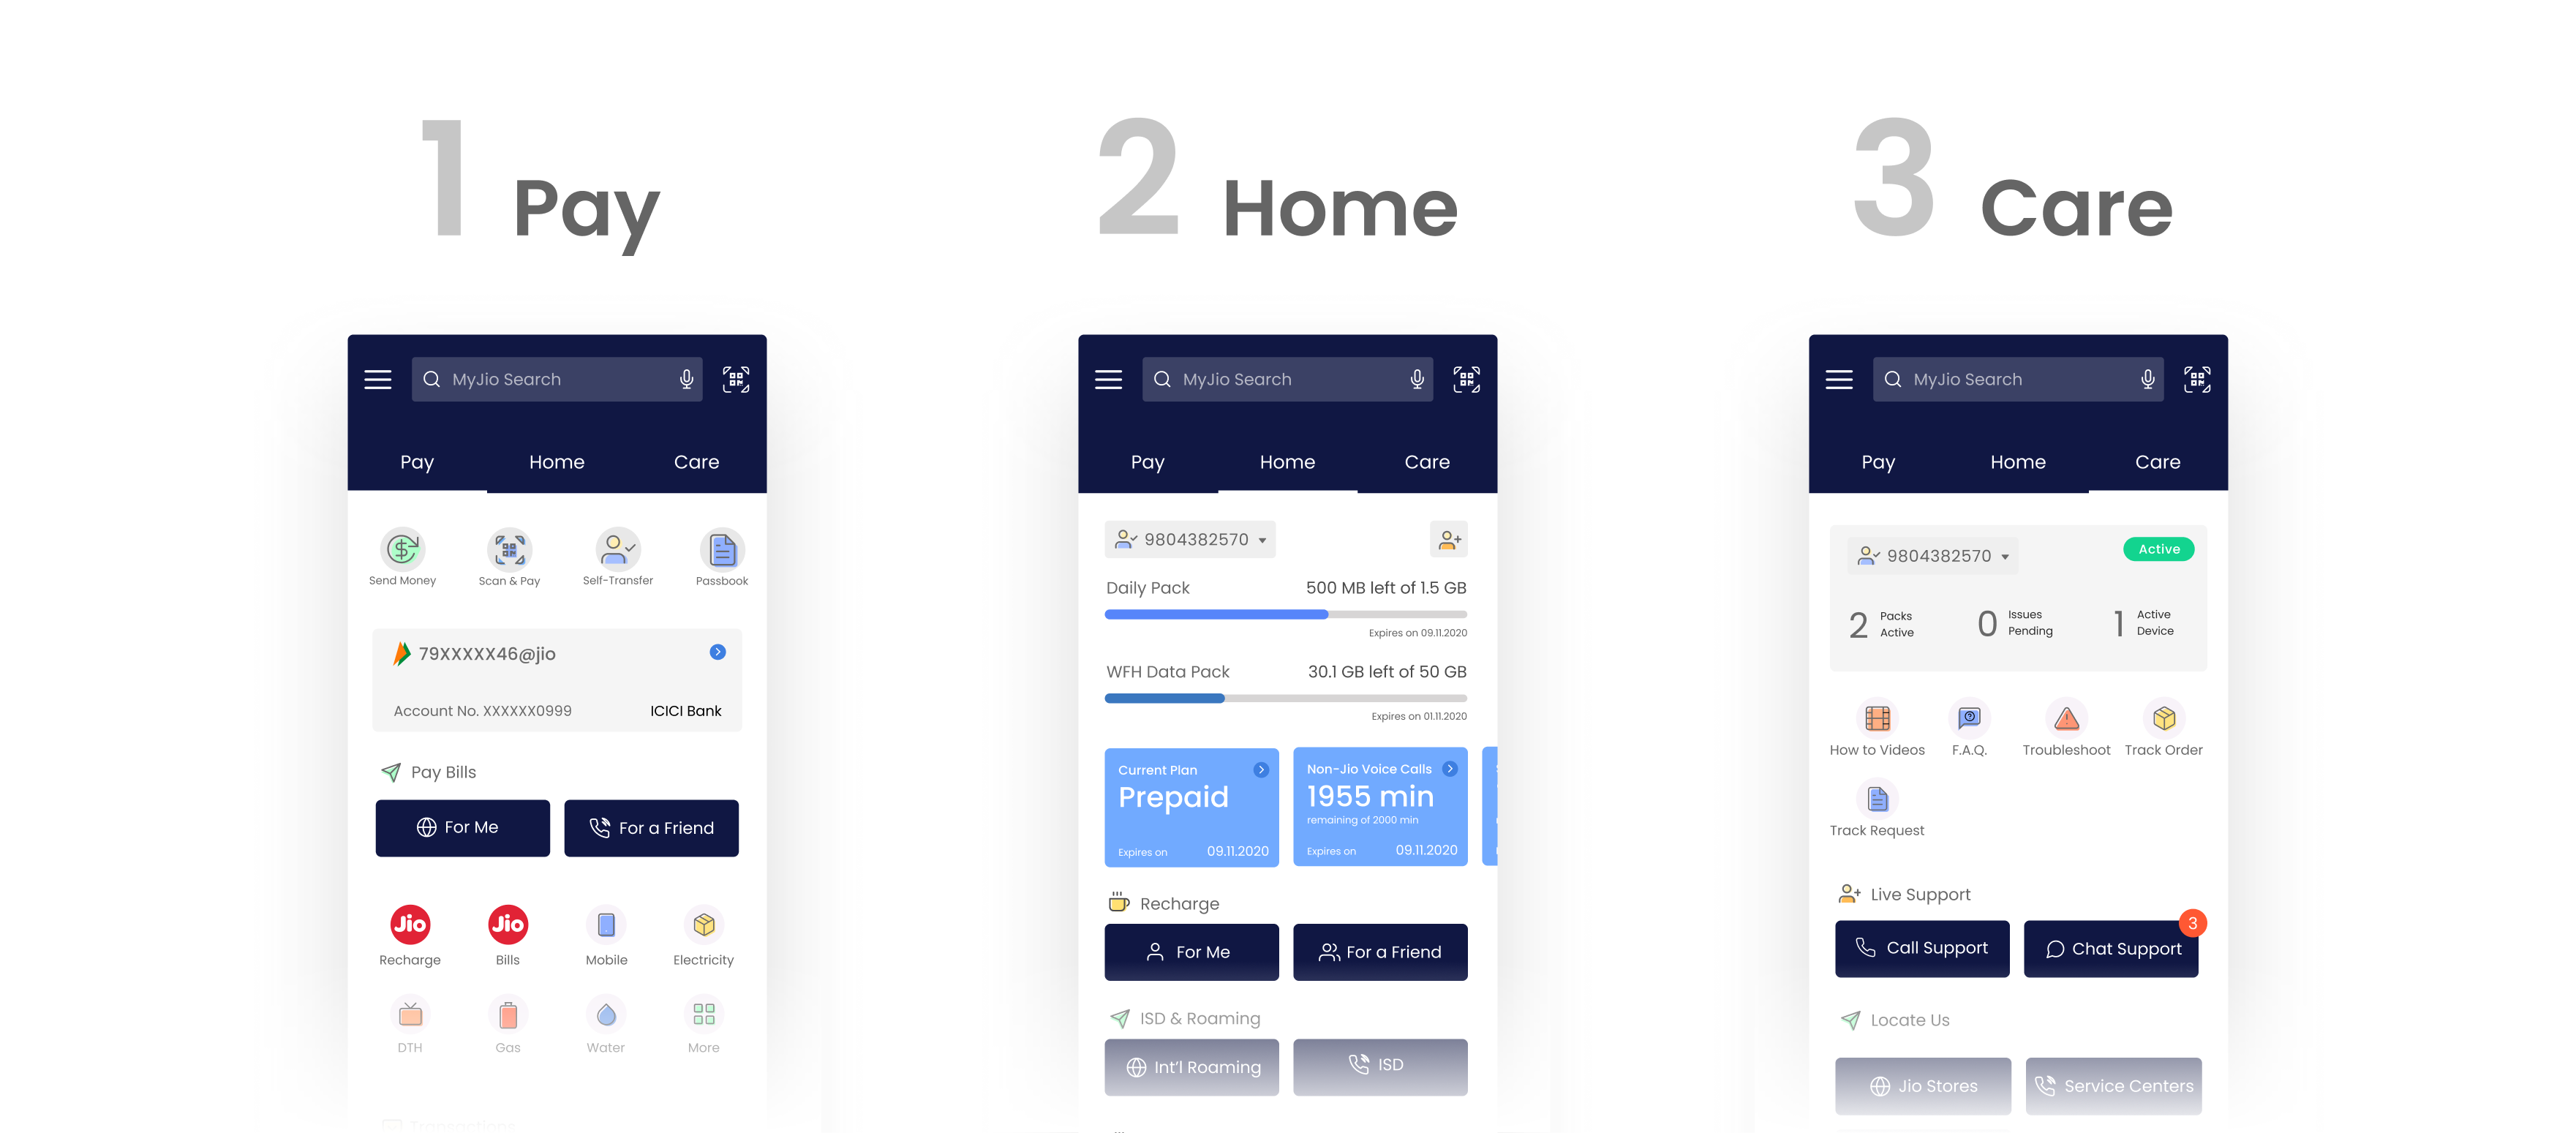 3 main screens—Pay, Home, and Care